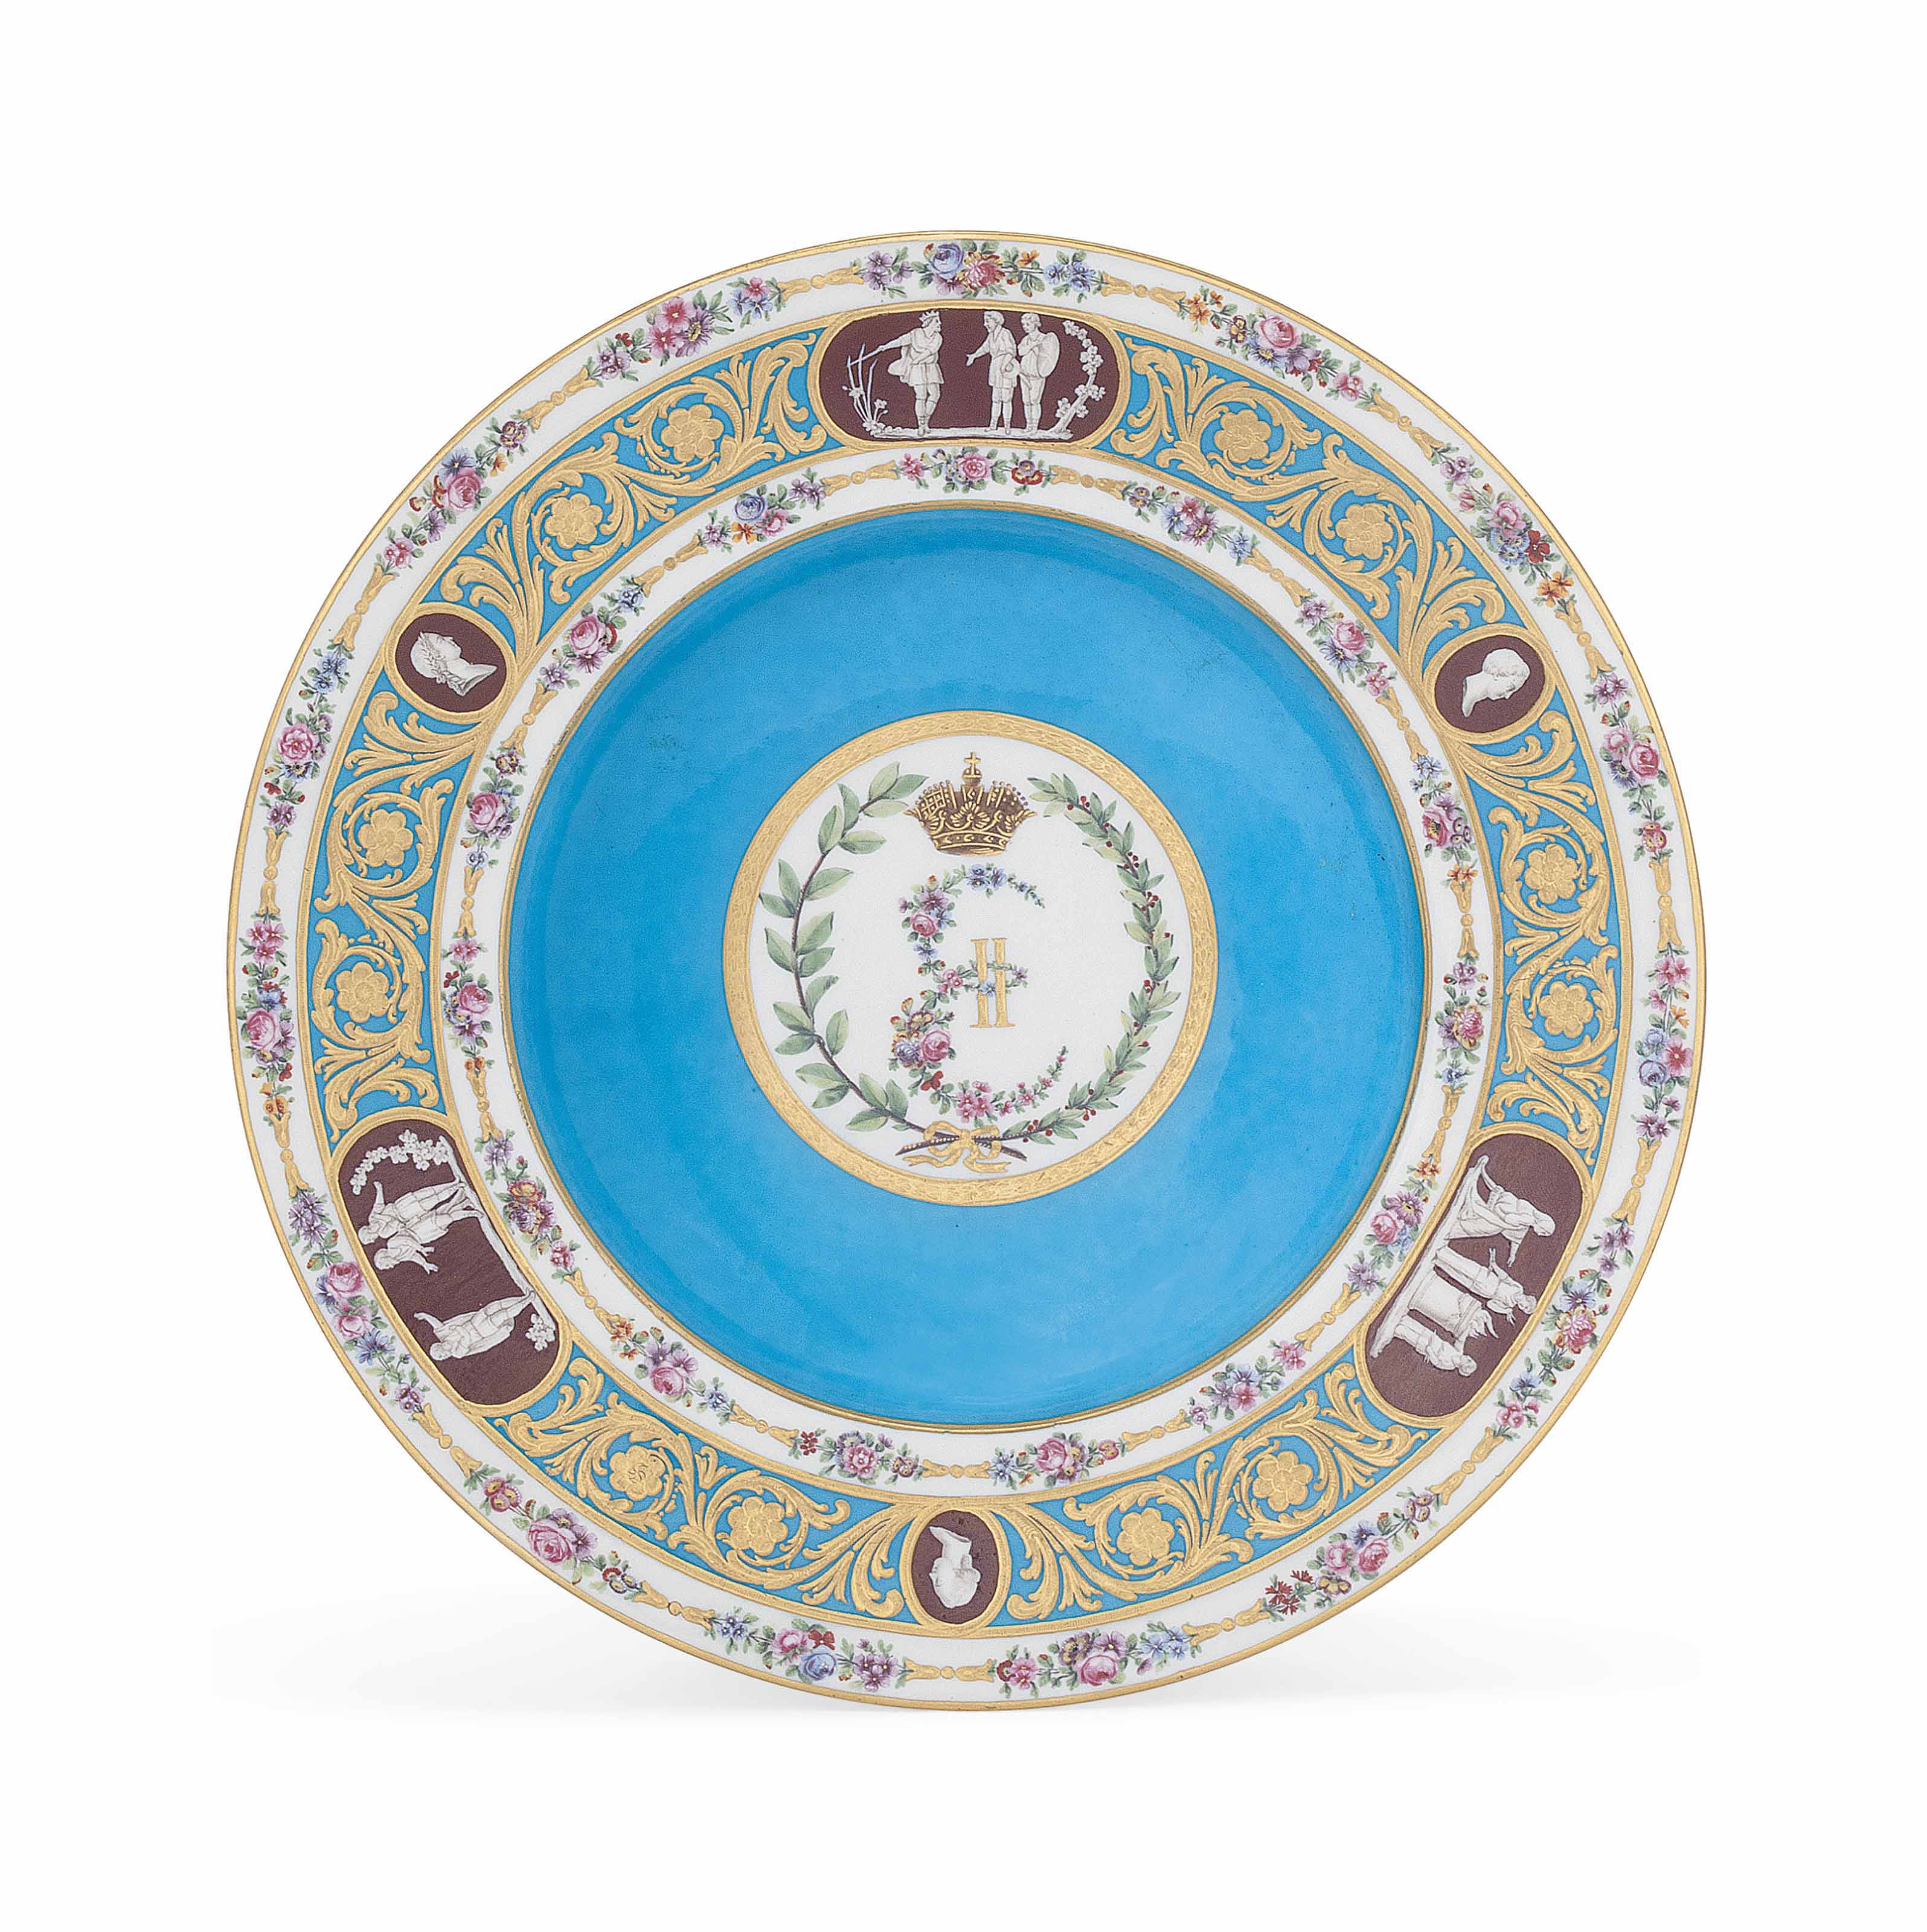 A SEVRES BLEU CELESTE-GROUND SOUP-PLATE FROM THE CATHERINE THE GREAT SERVICE